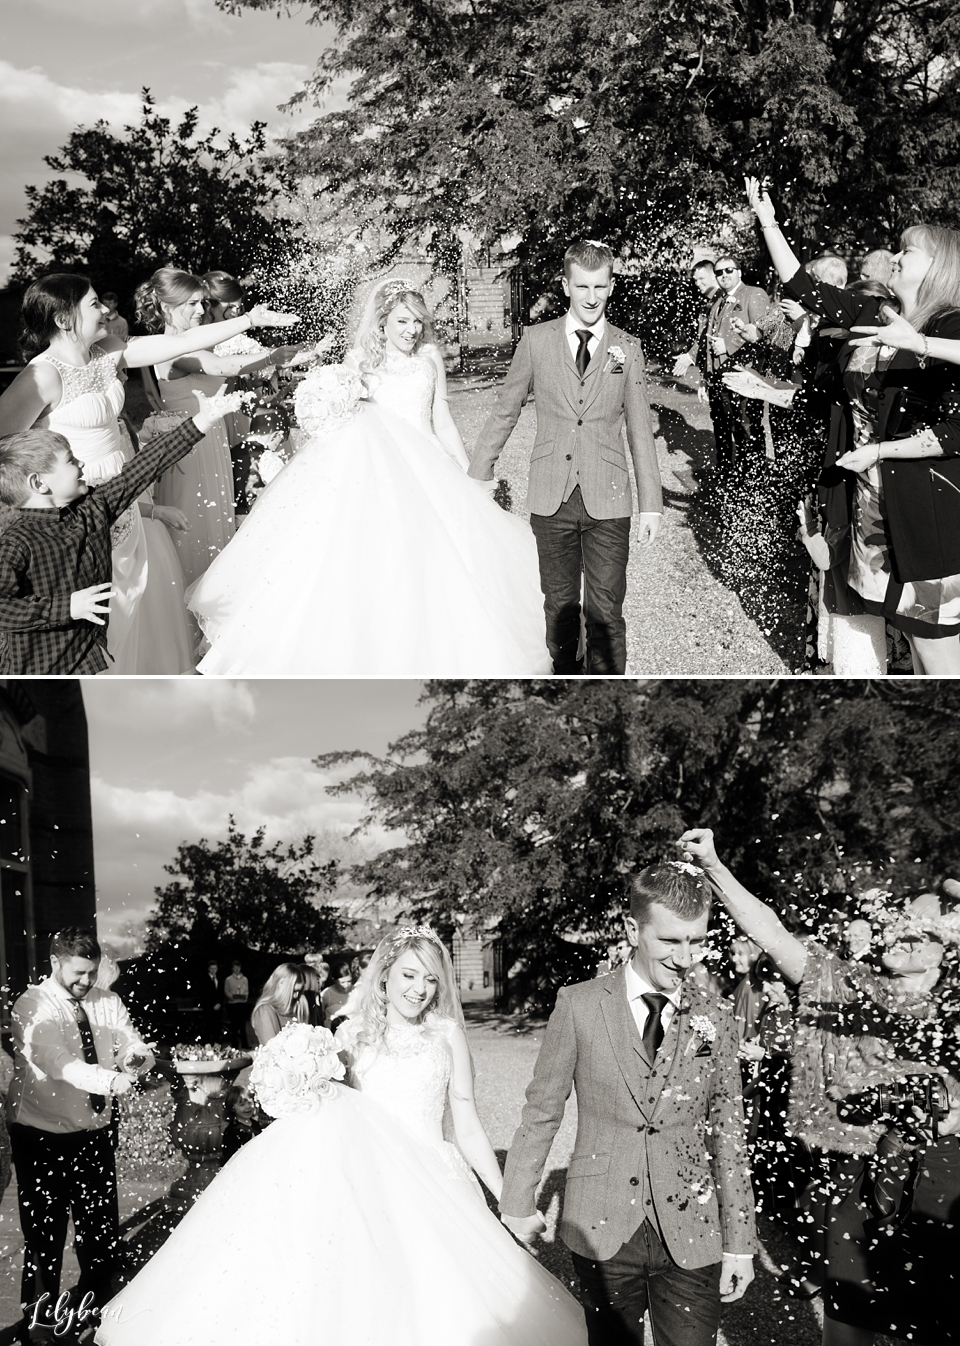 Confetti being thrown at bride & groom